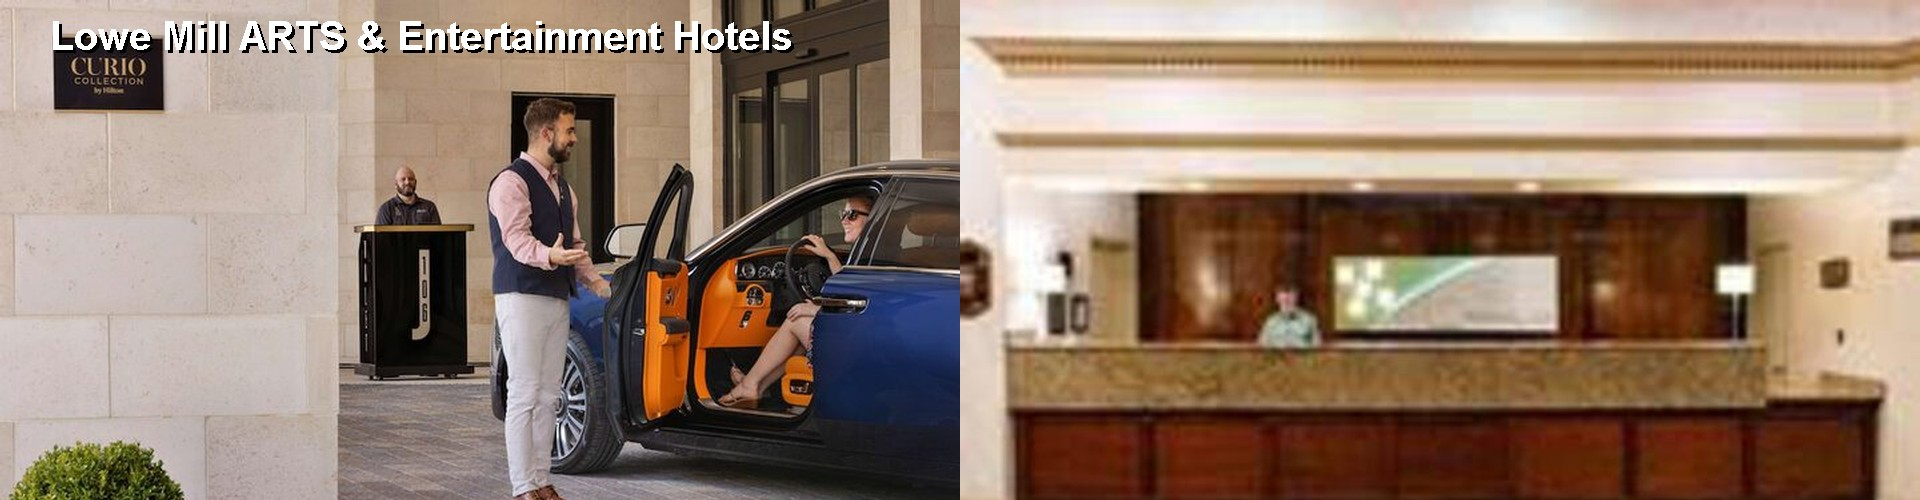 5 Best Hotels near Lowe Mill ARTS & Entertainment